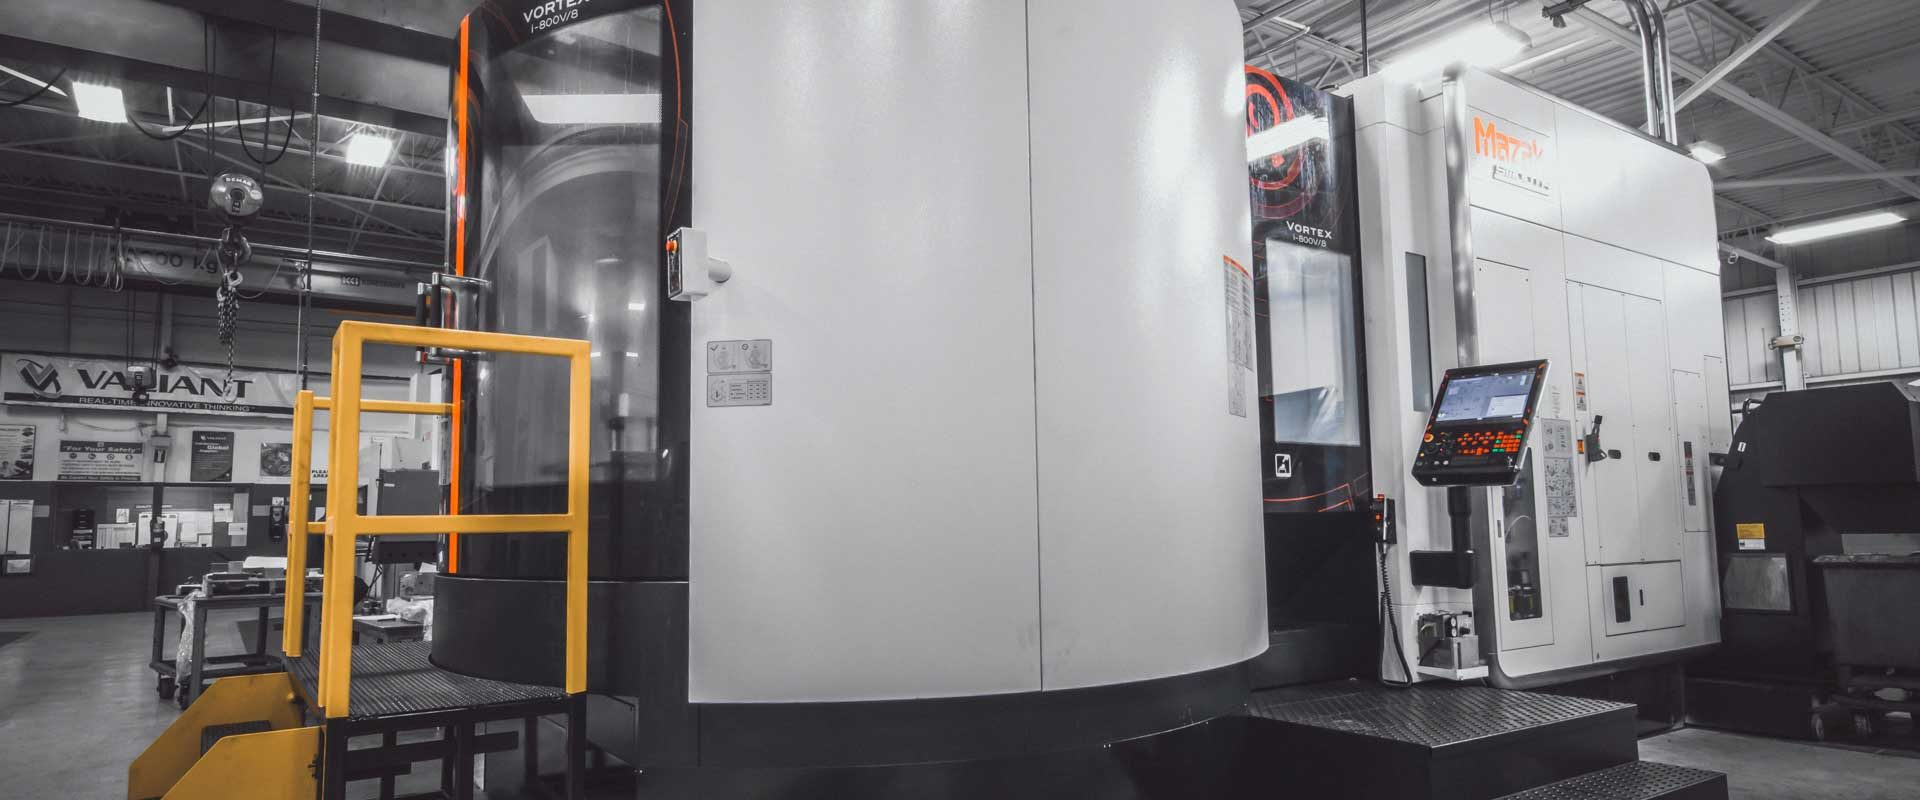 Valianttms Mold Mazak Iv800v8 Vertical Machining Center